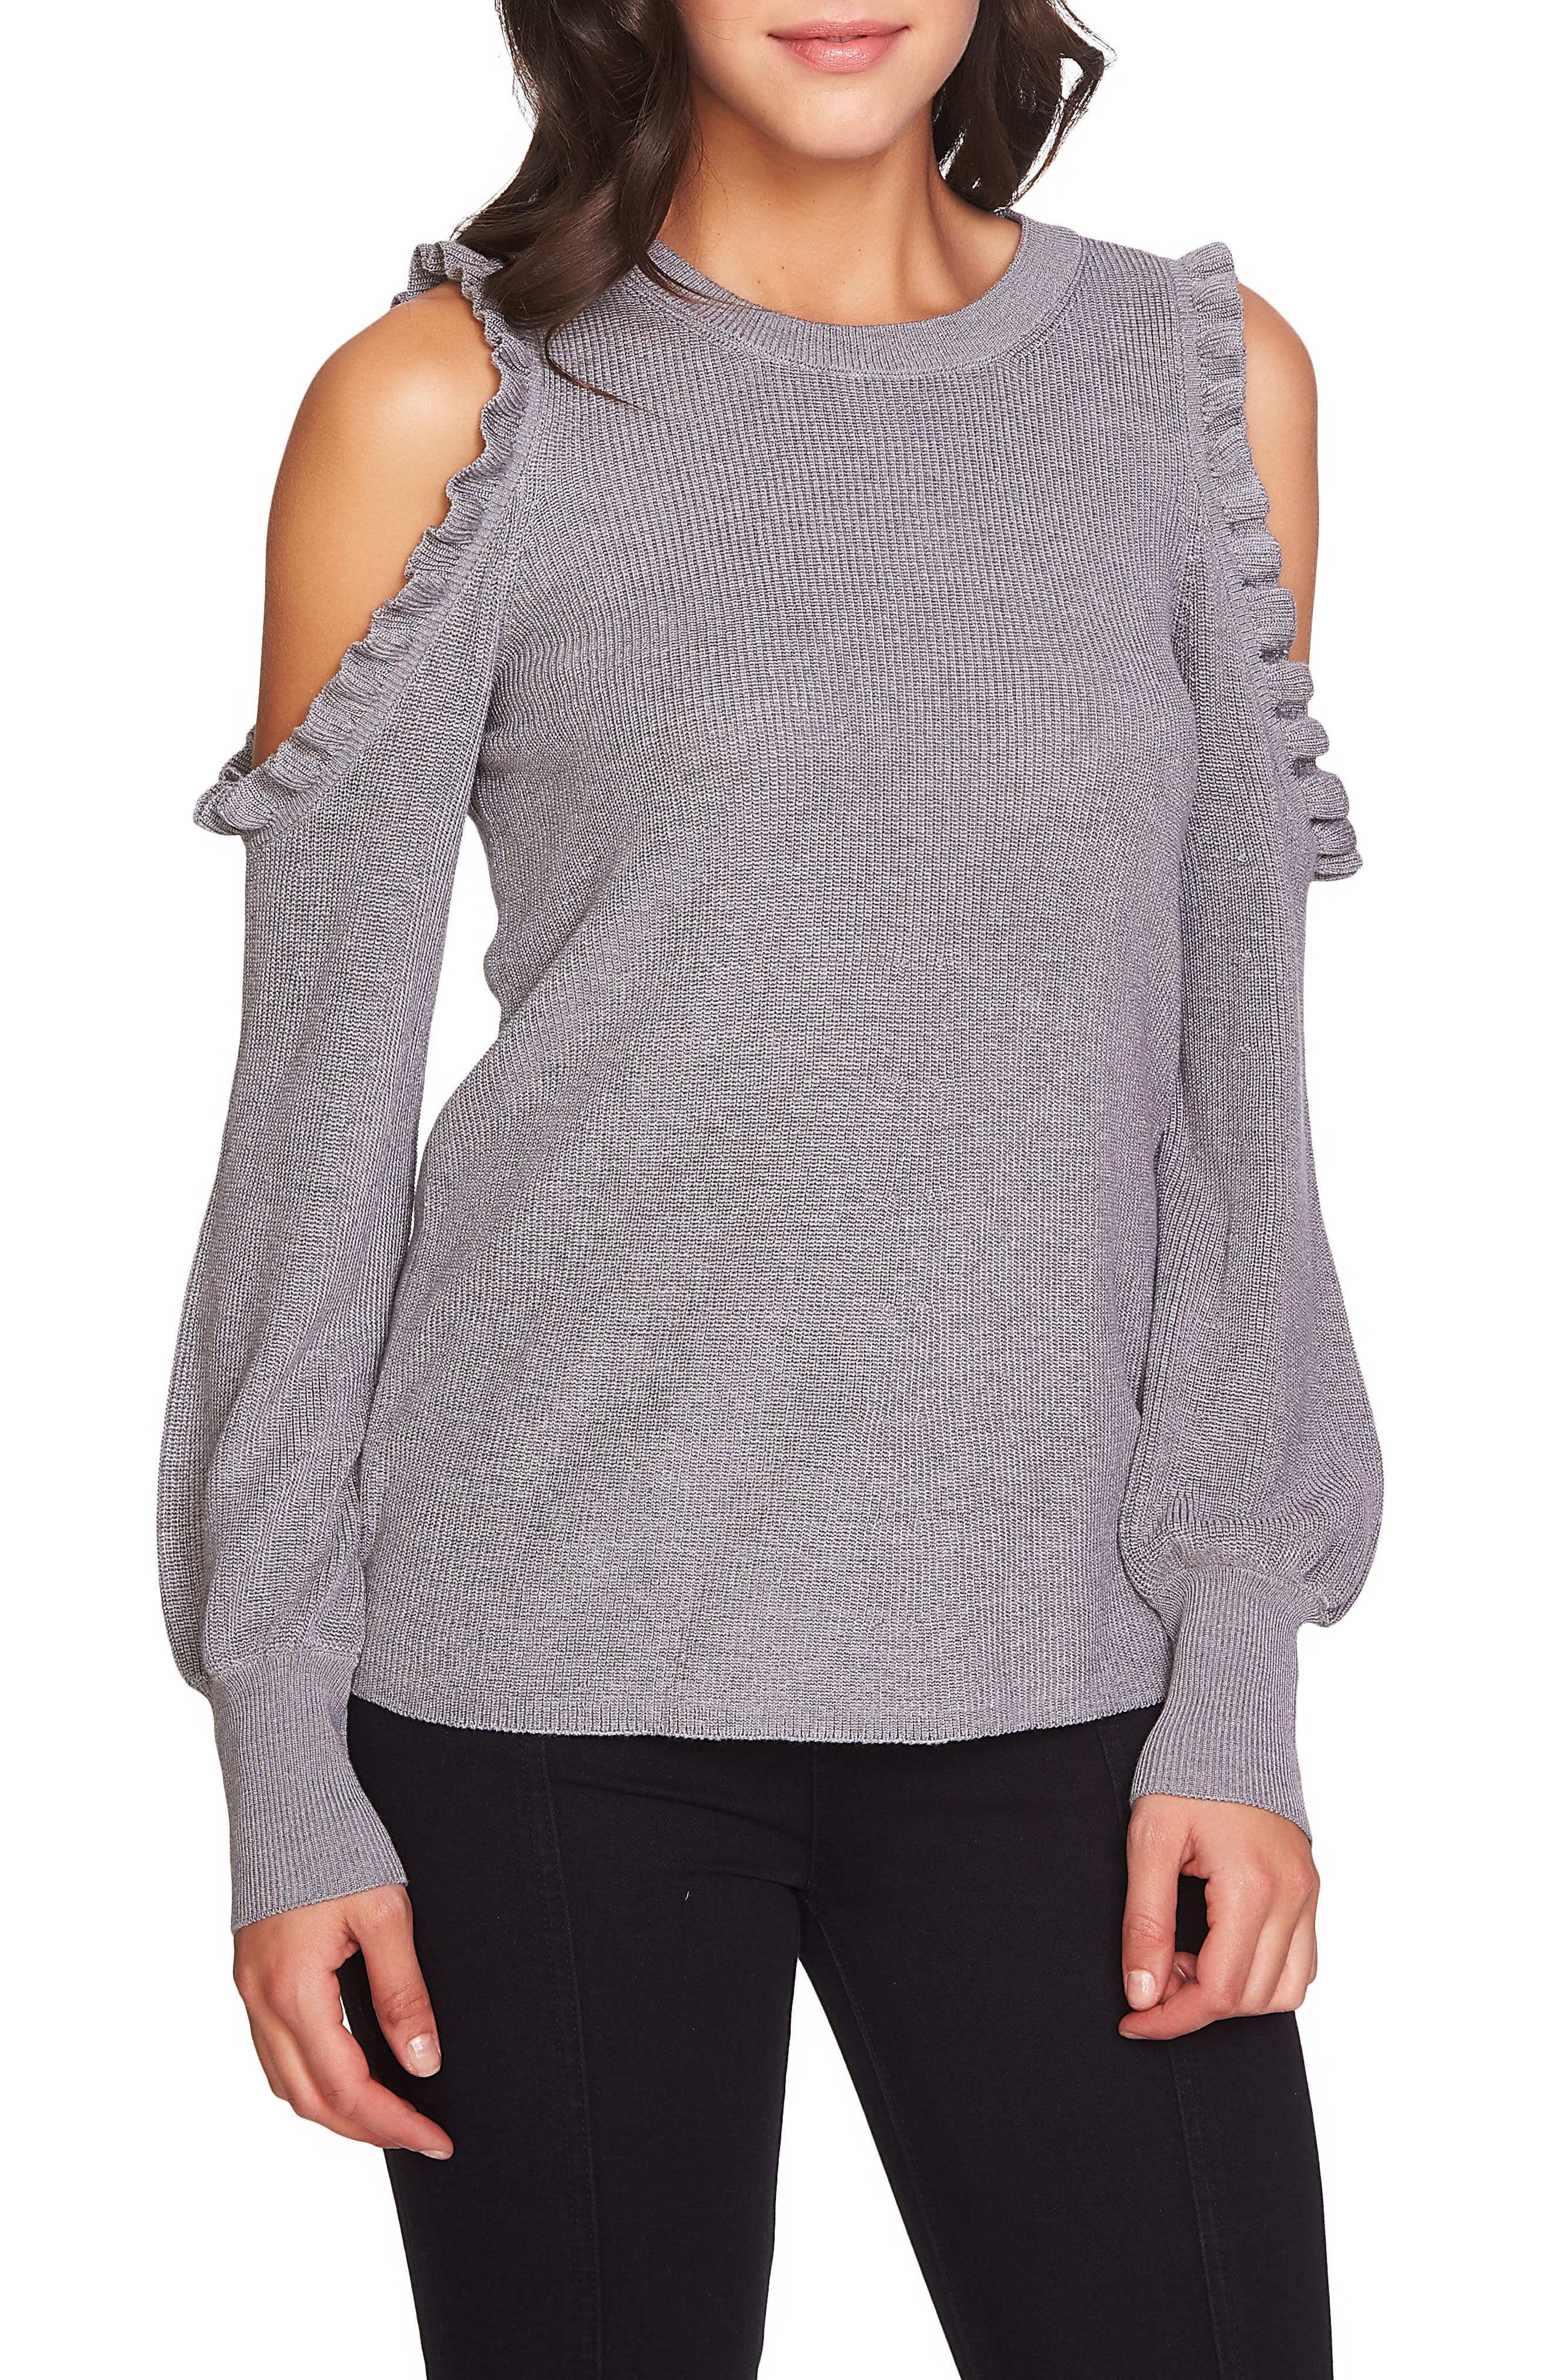 Alternate Image 1 Selected - 1.STATE Cold Shoulder Sweater